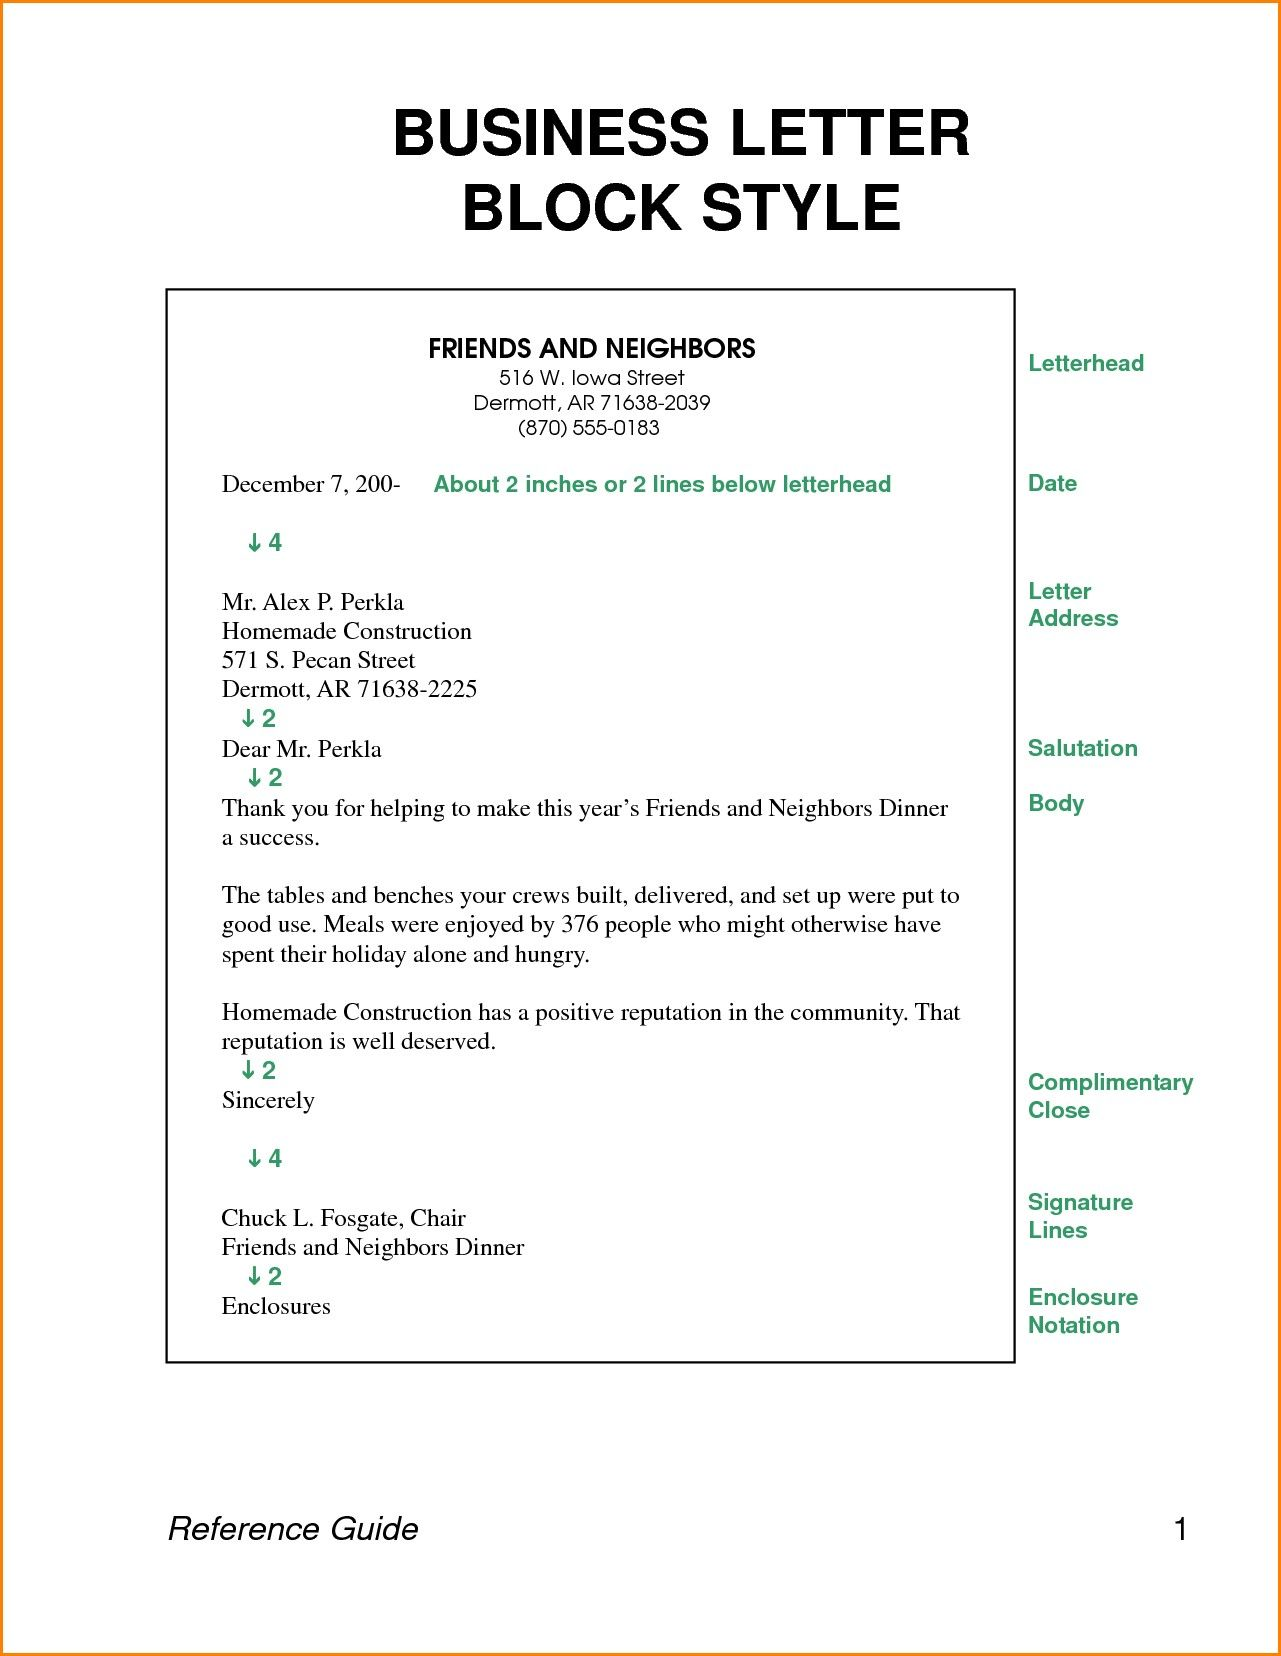 Valid Sample Of Business Letter In Block Style Business